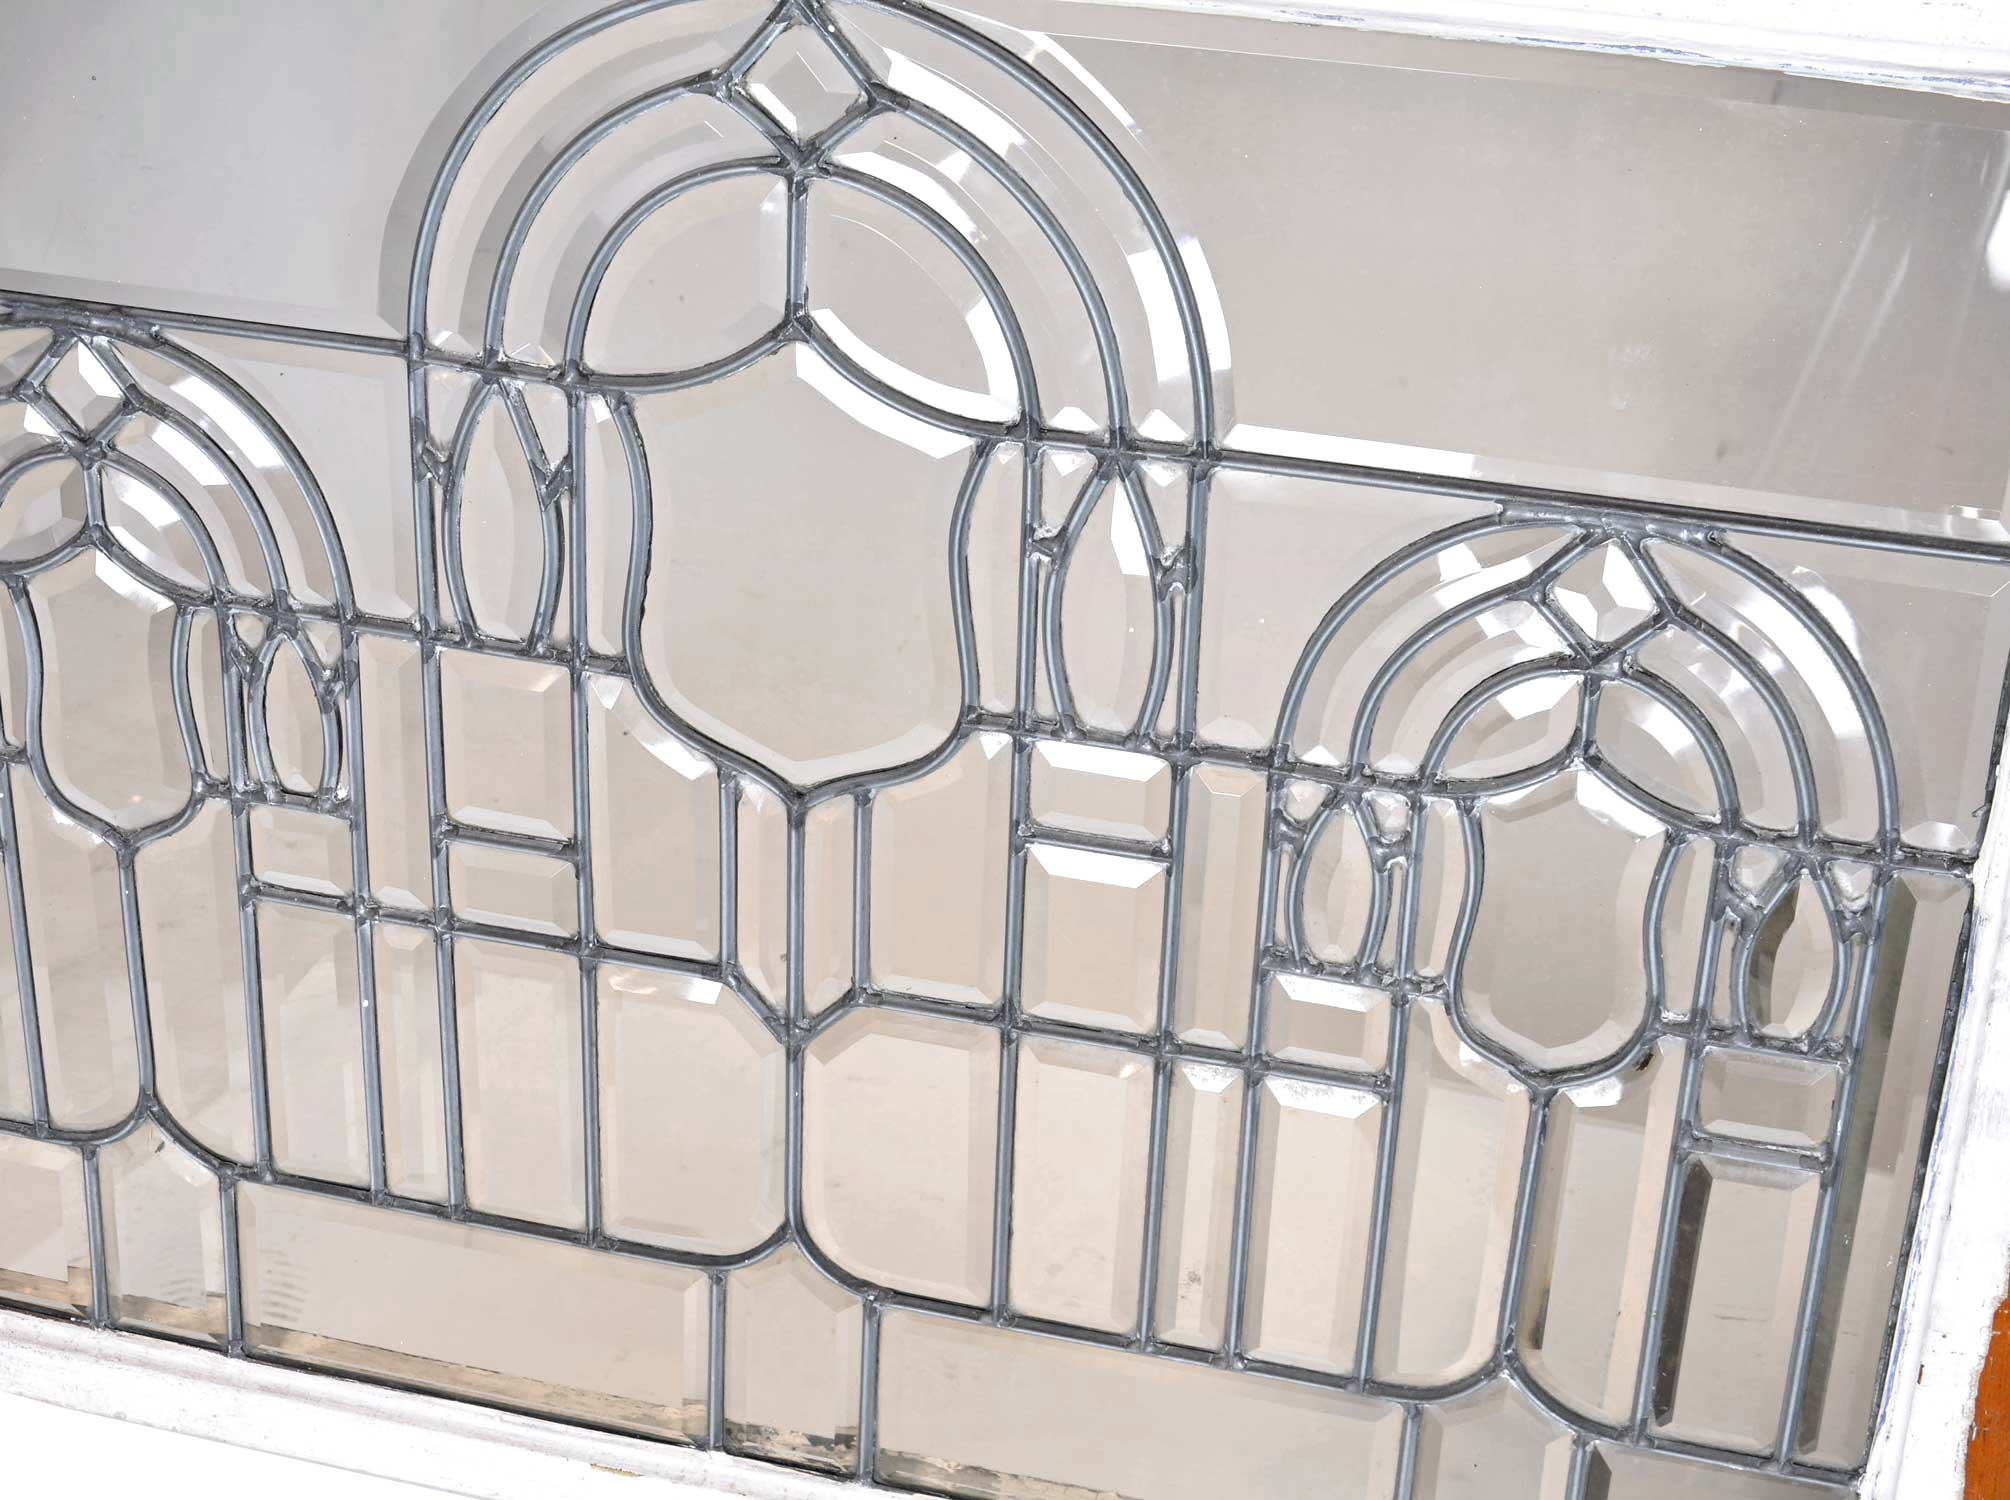 46295-beveled-glass-window-with-arches-detail.jpg